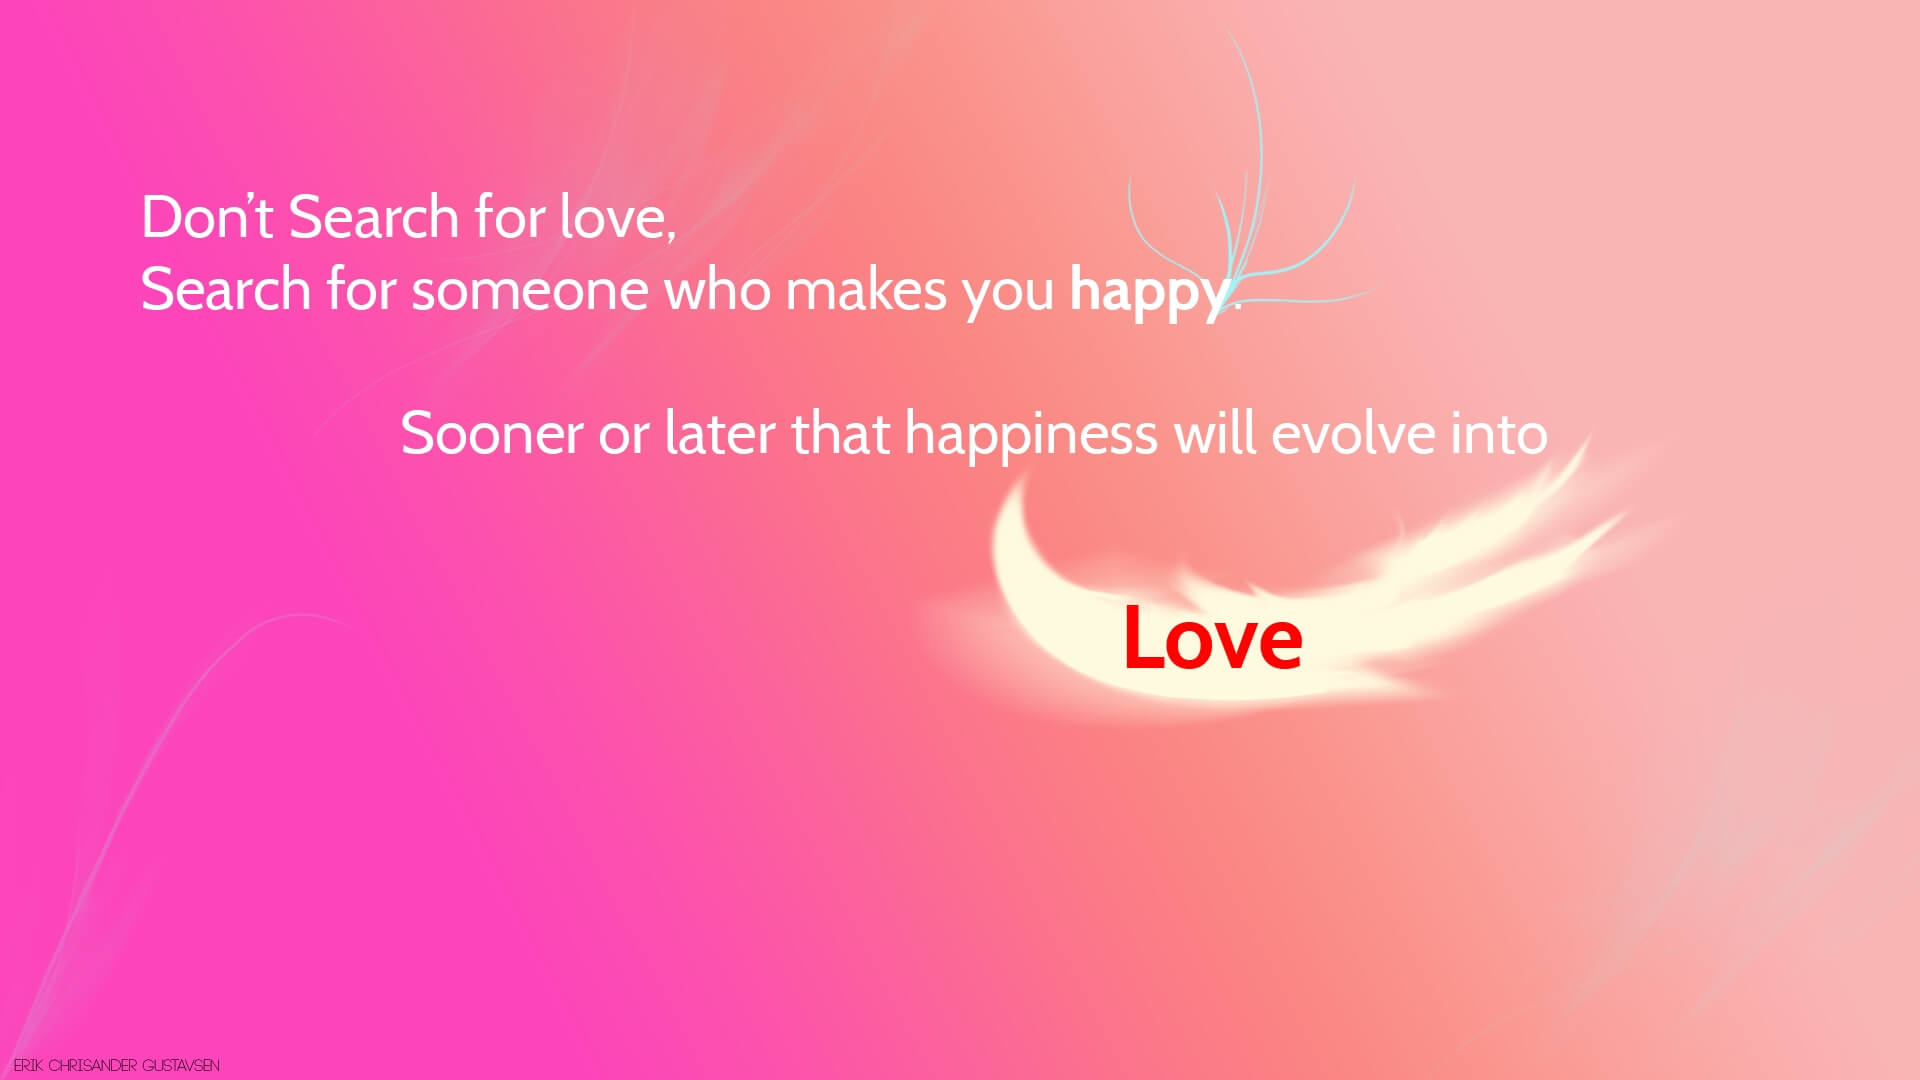 Beautiful Love Quotes Hd Wallpapers Wallpaper sportstle